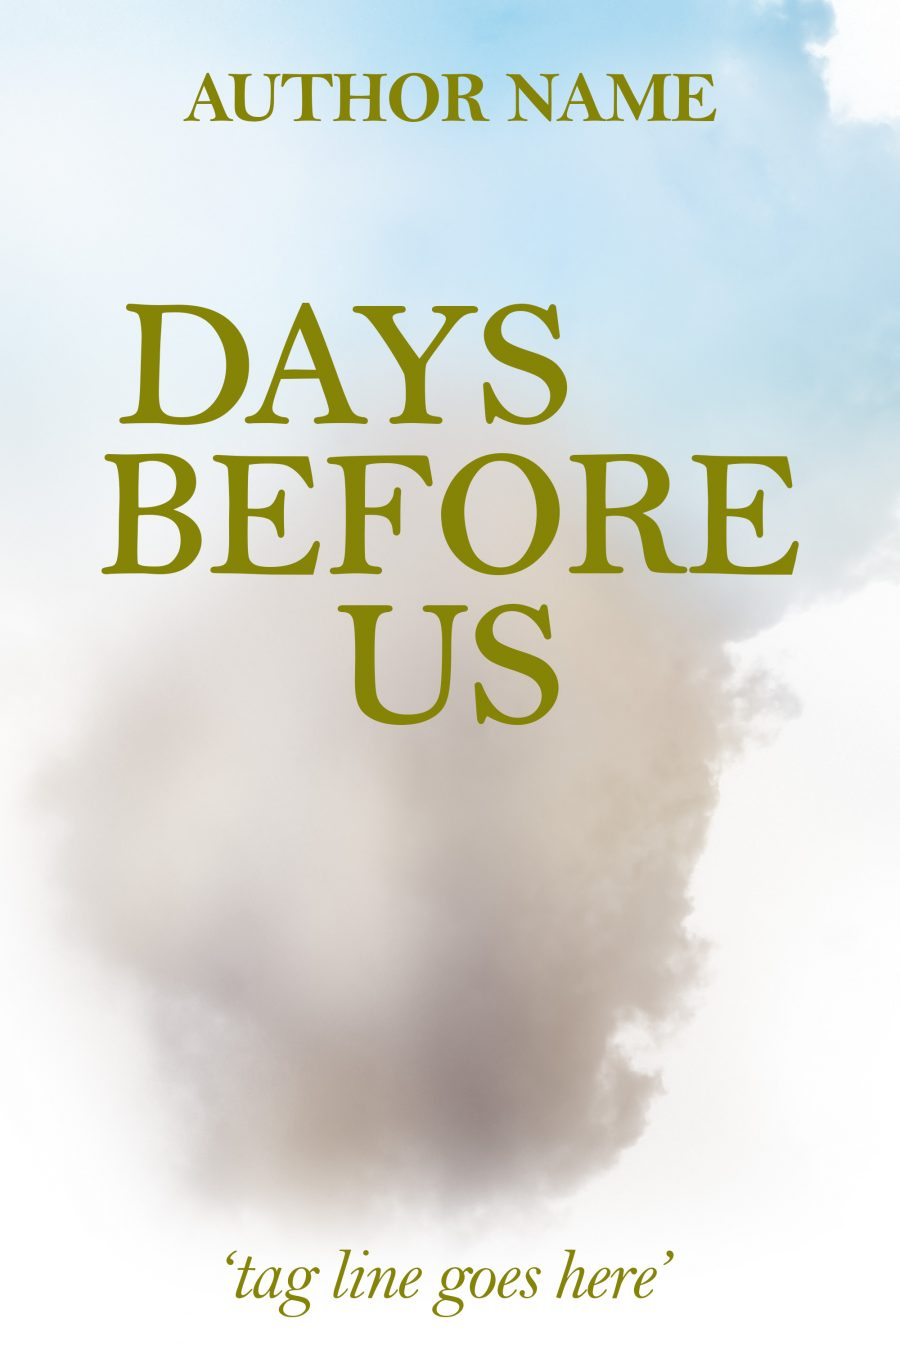 Days Before Us by Pora's Designs